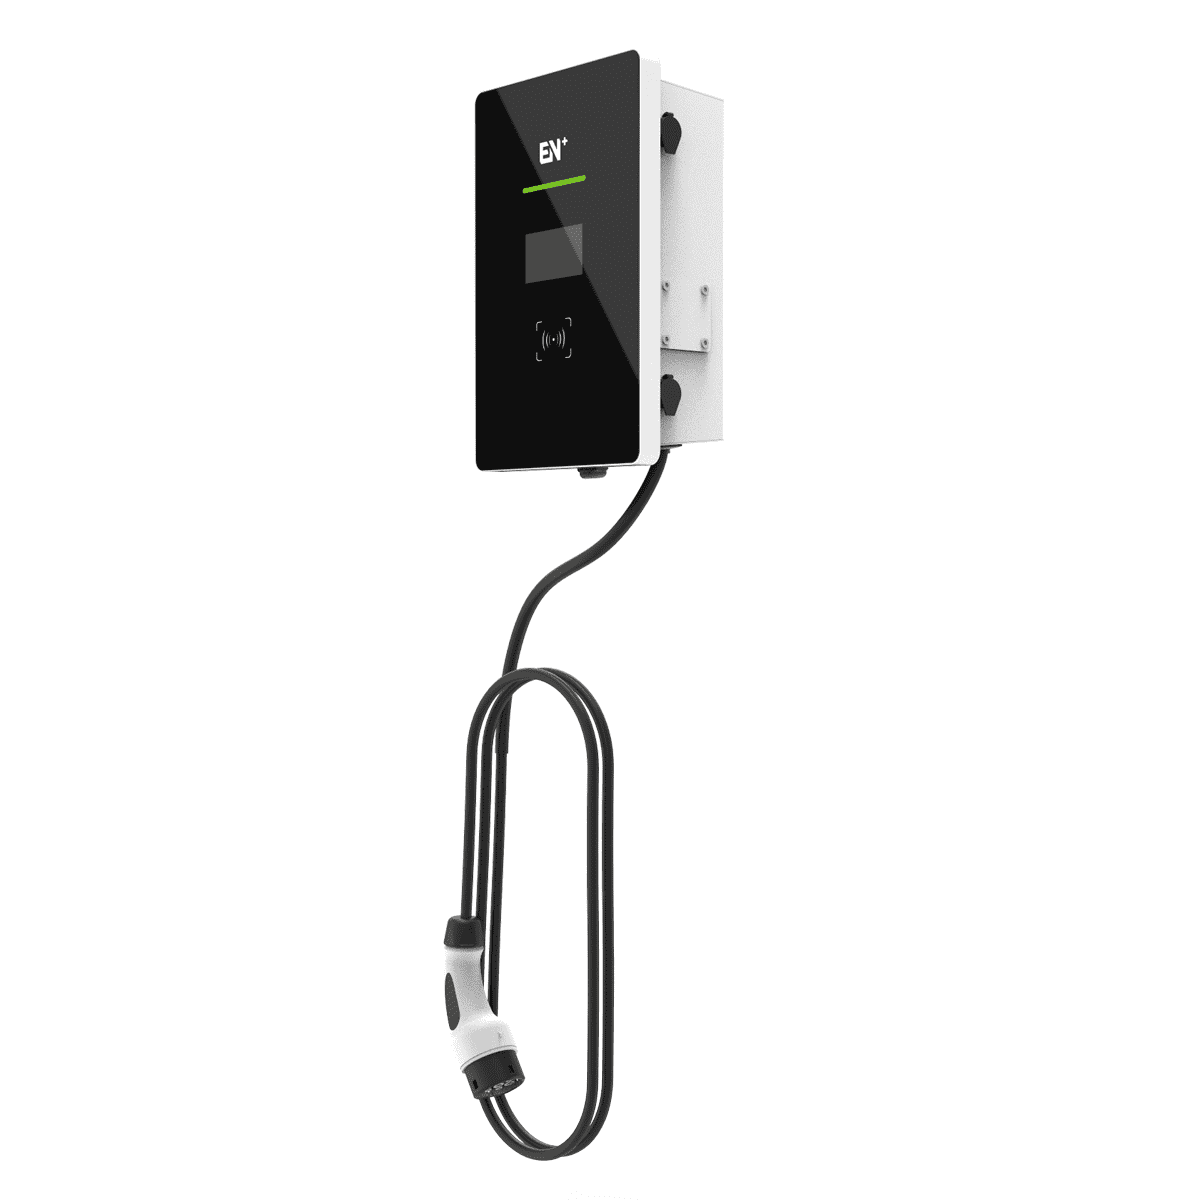 22kW AC Three-phase Commercial EV Charging Wallbox